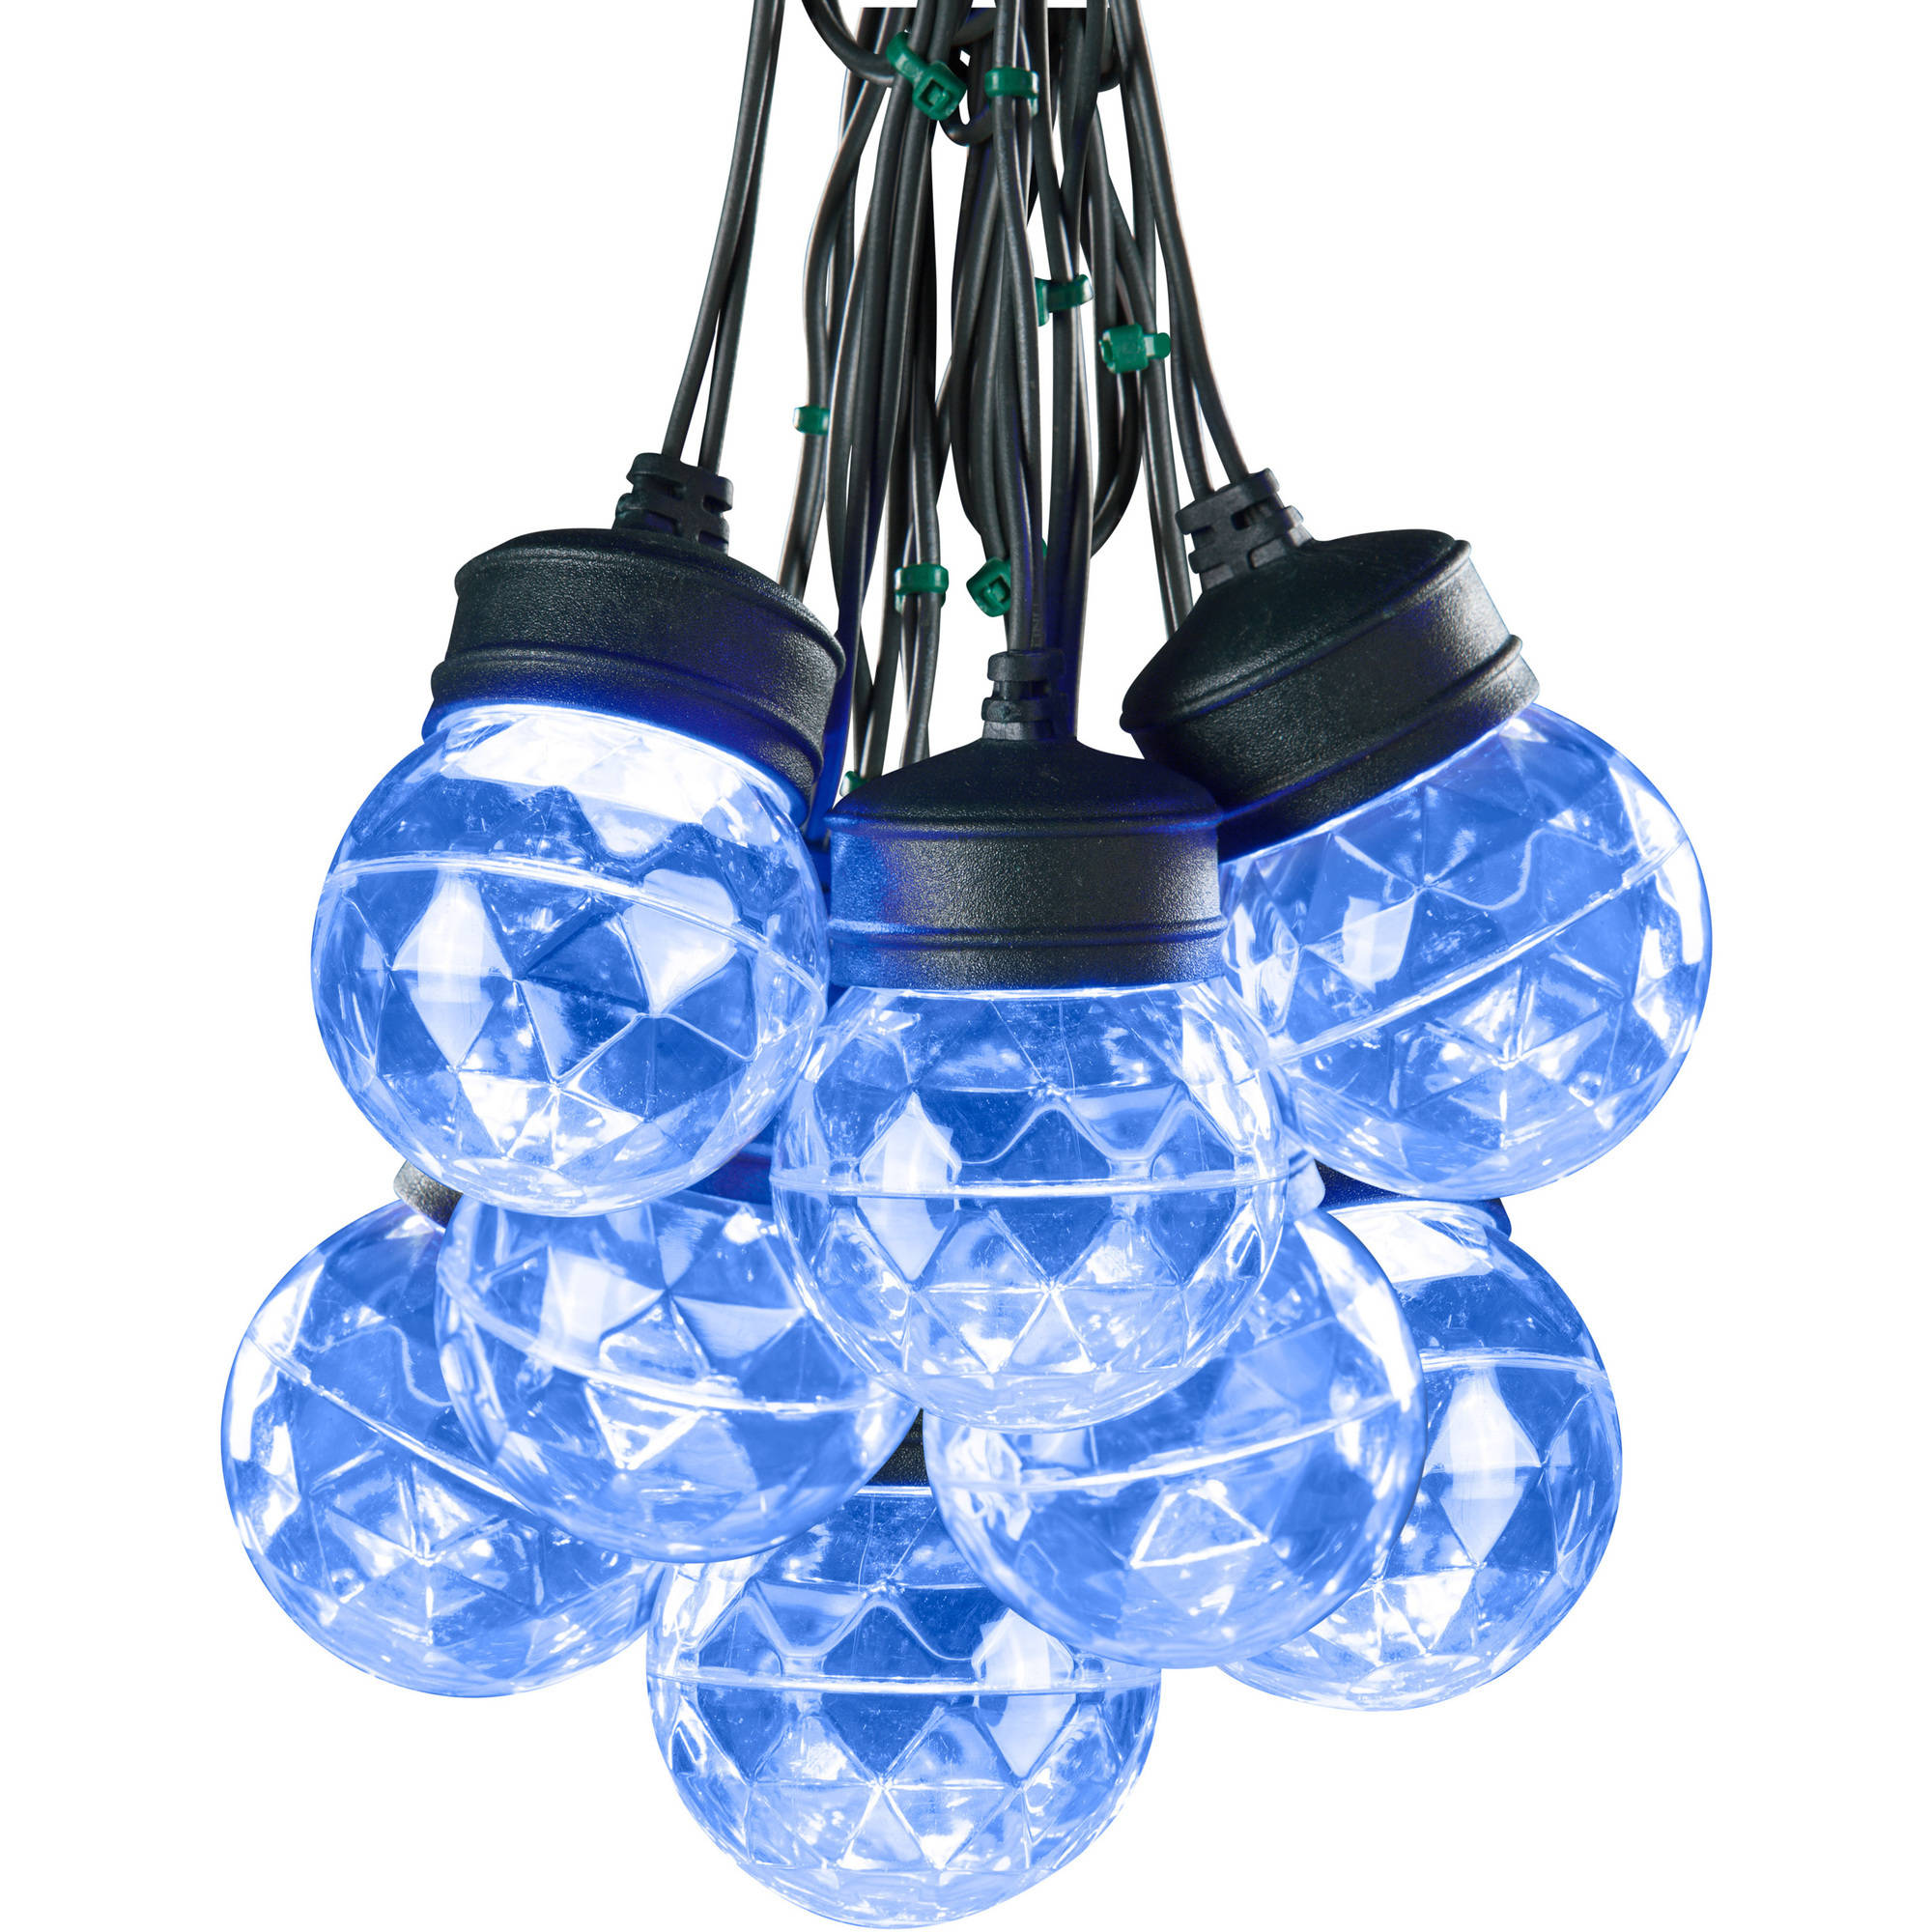 Lightshow Christmas Lights Projection Light String W / Clips-S / 8-Round, Icy Blue